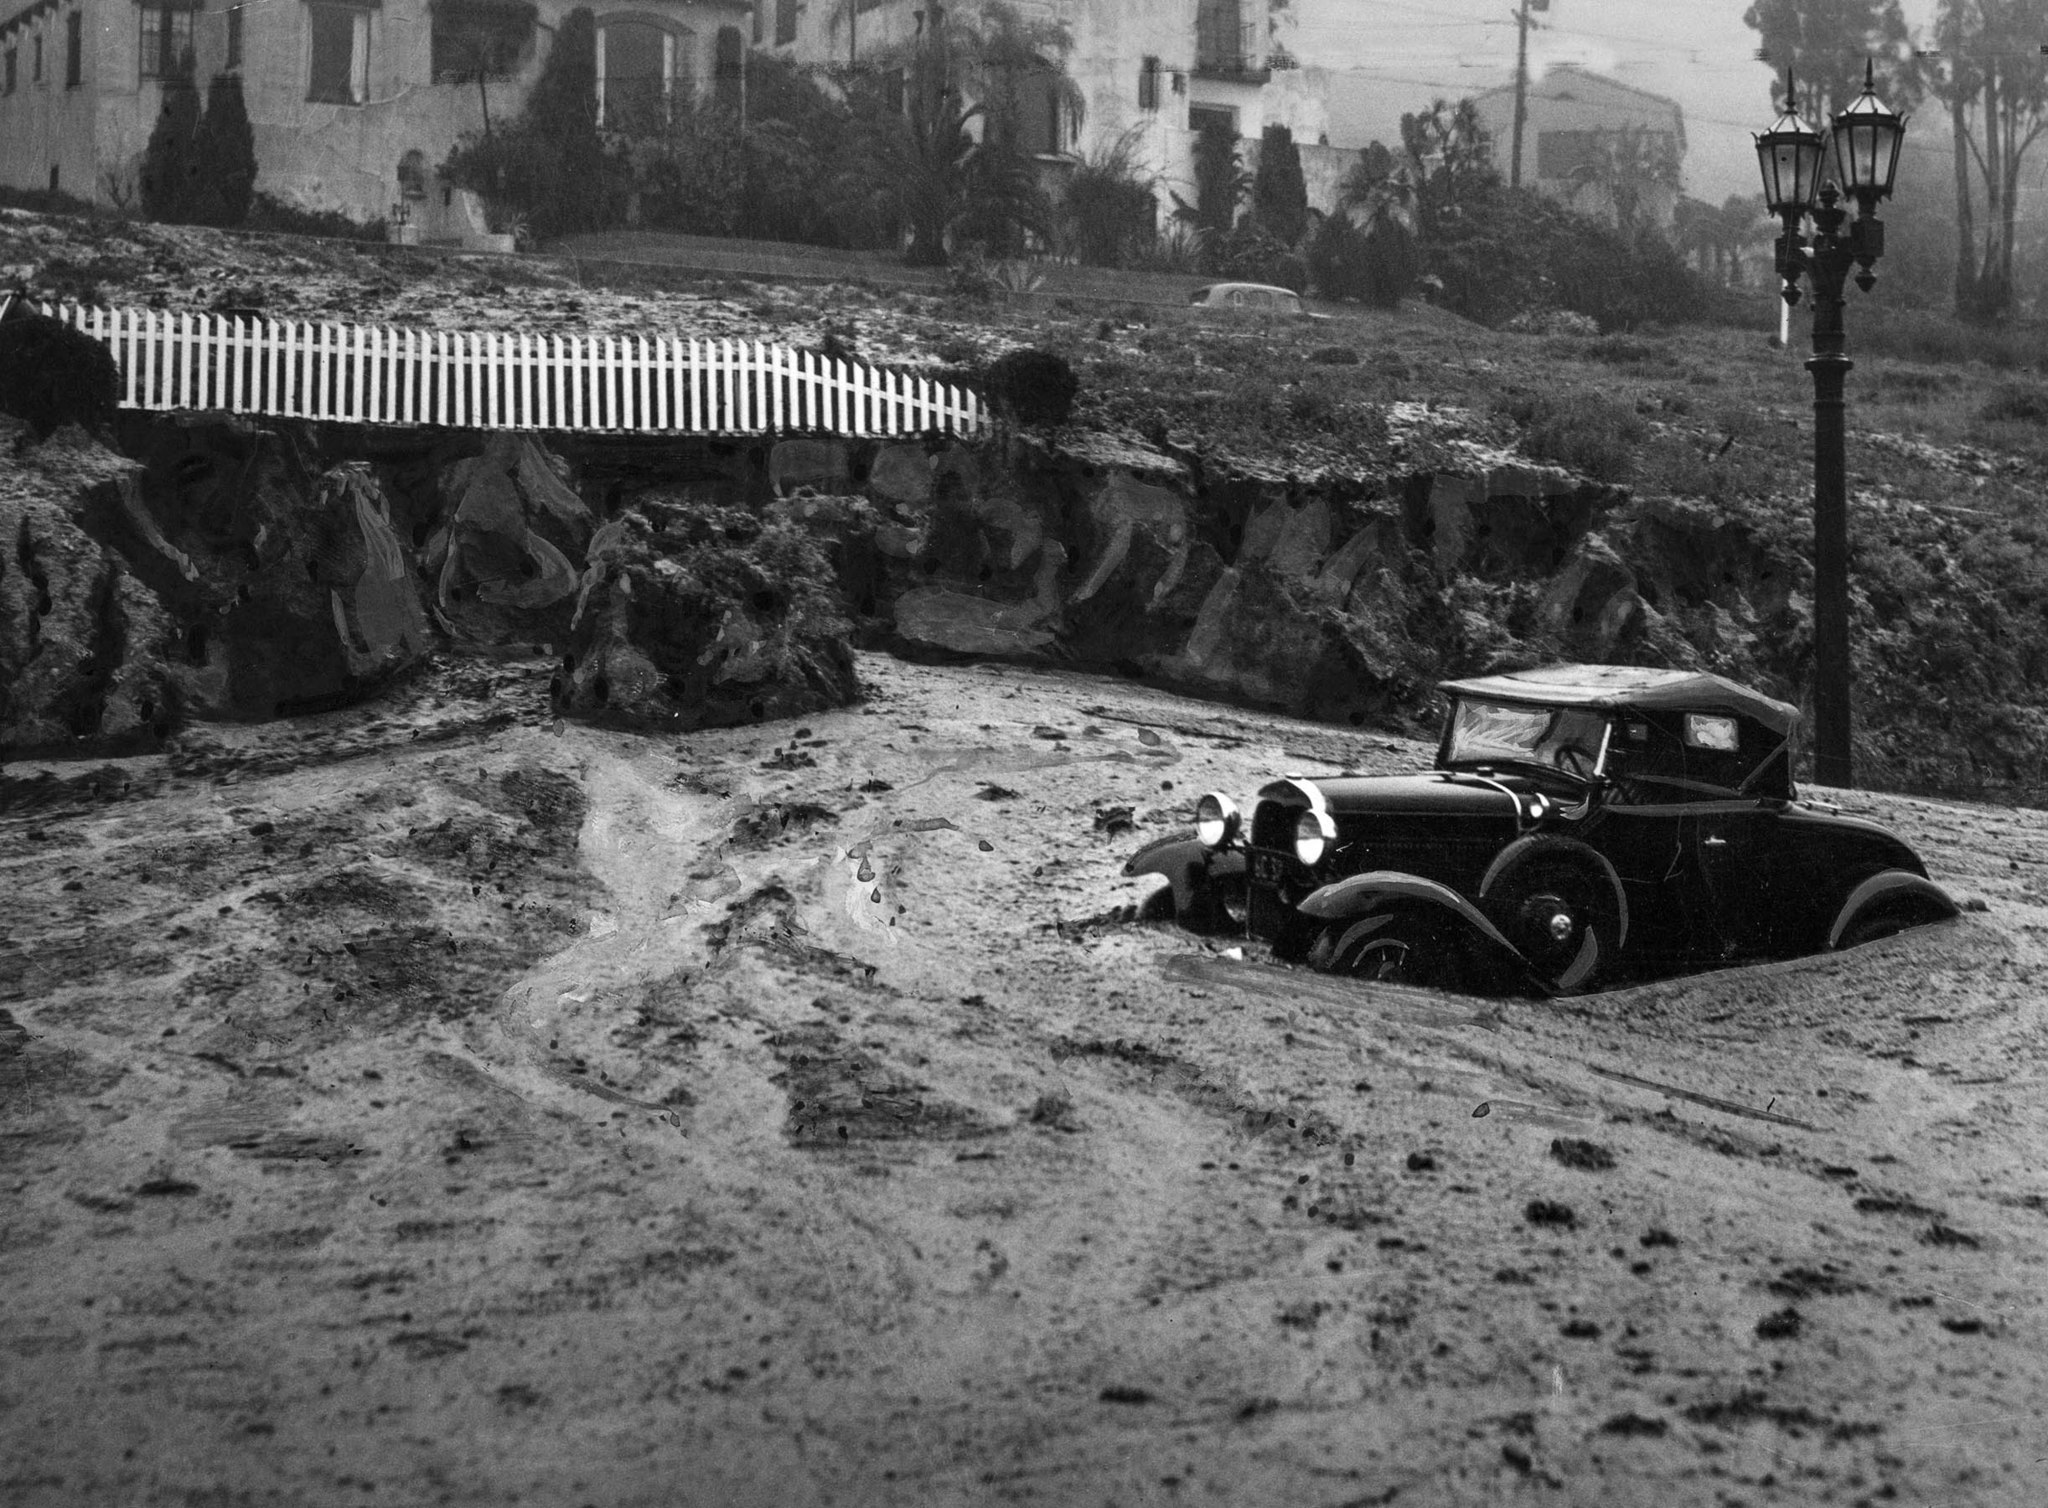 March 2, 1938: Mud slide at Harper Avenue and Sunset Boulevard caught this automobile and closed the